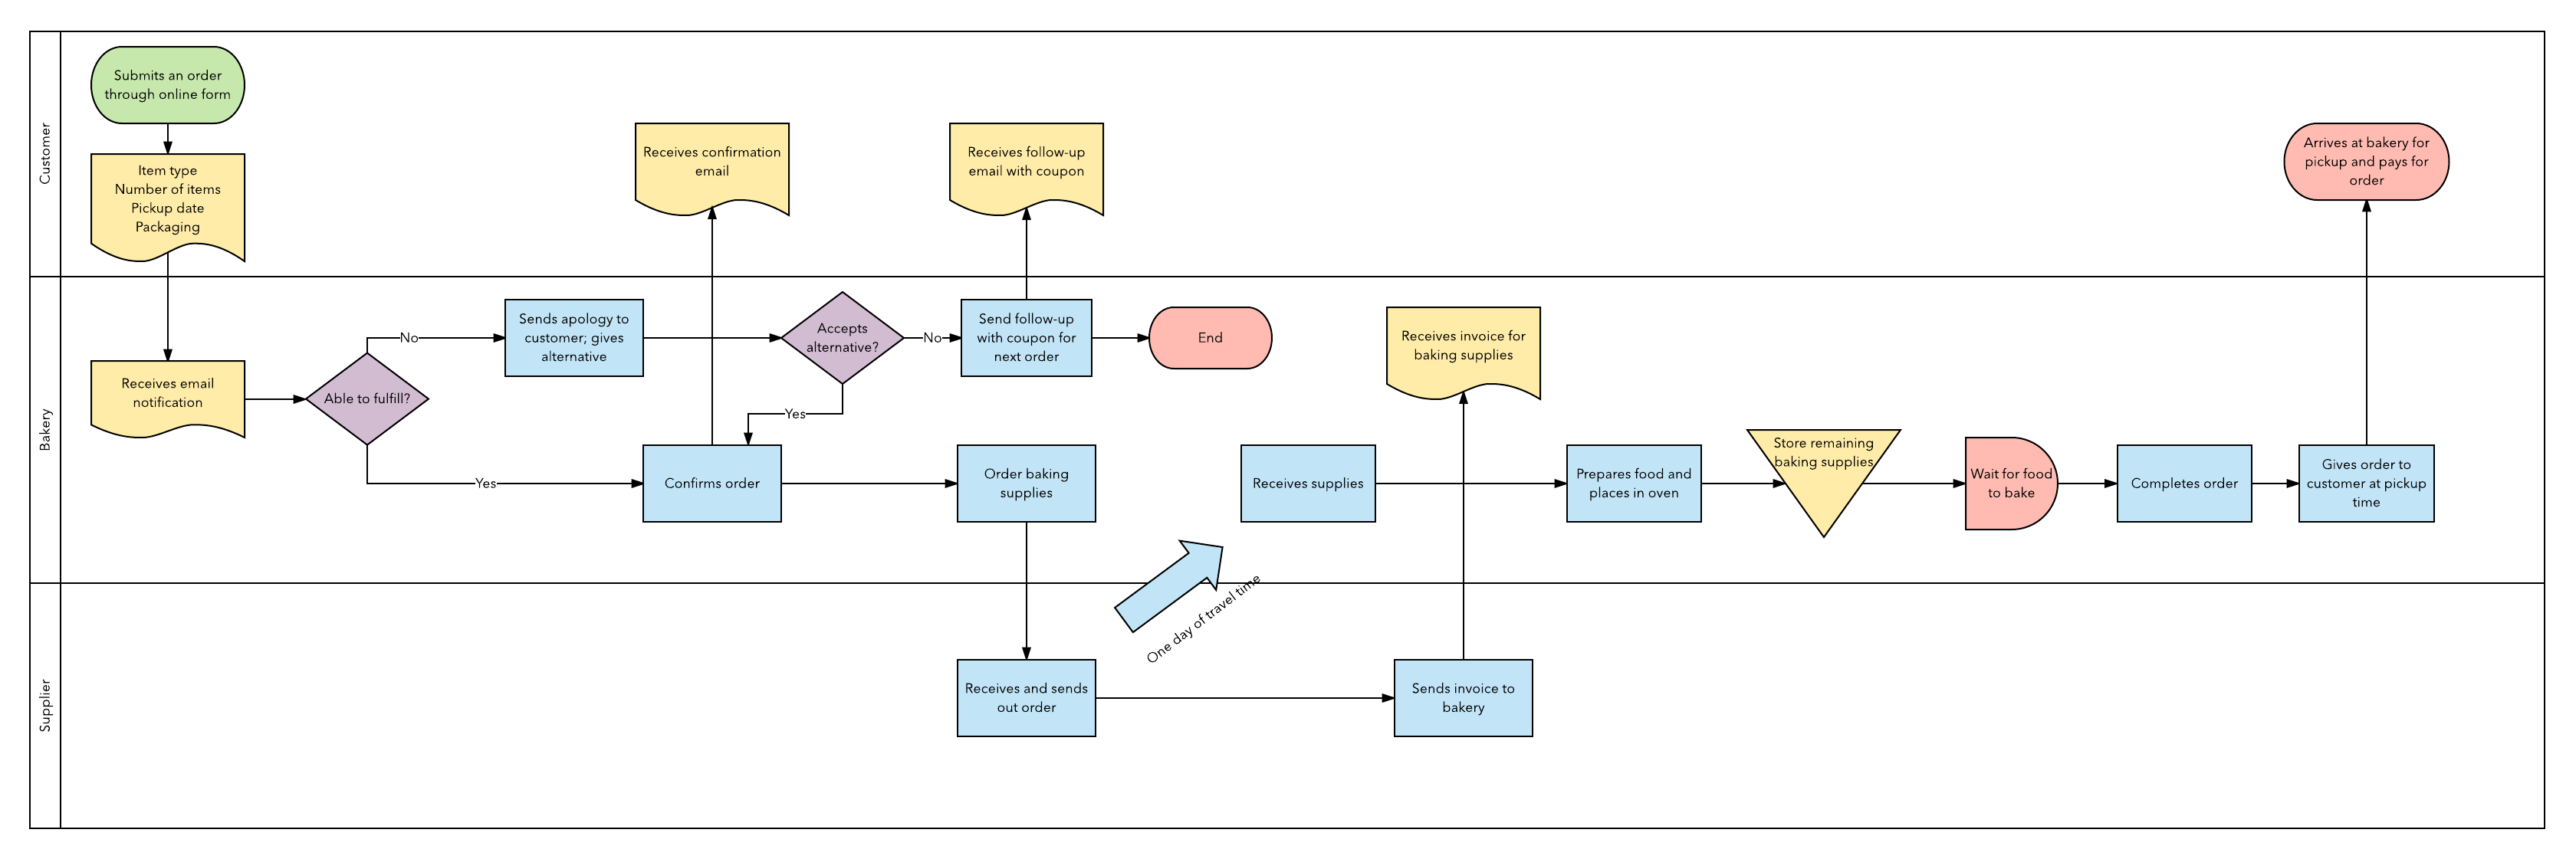 six sigma flow chart template - how to start six sigma process mapping lucidchart blog